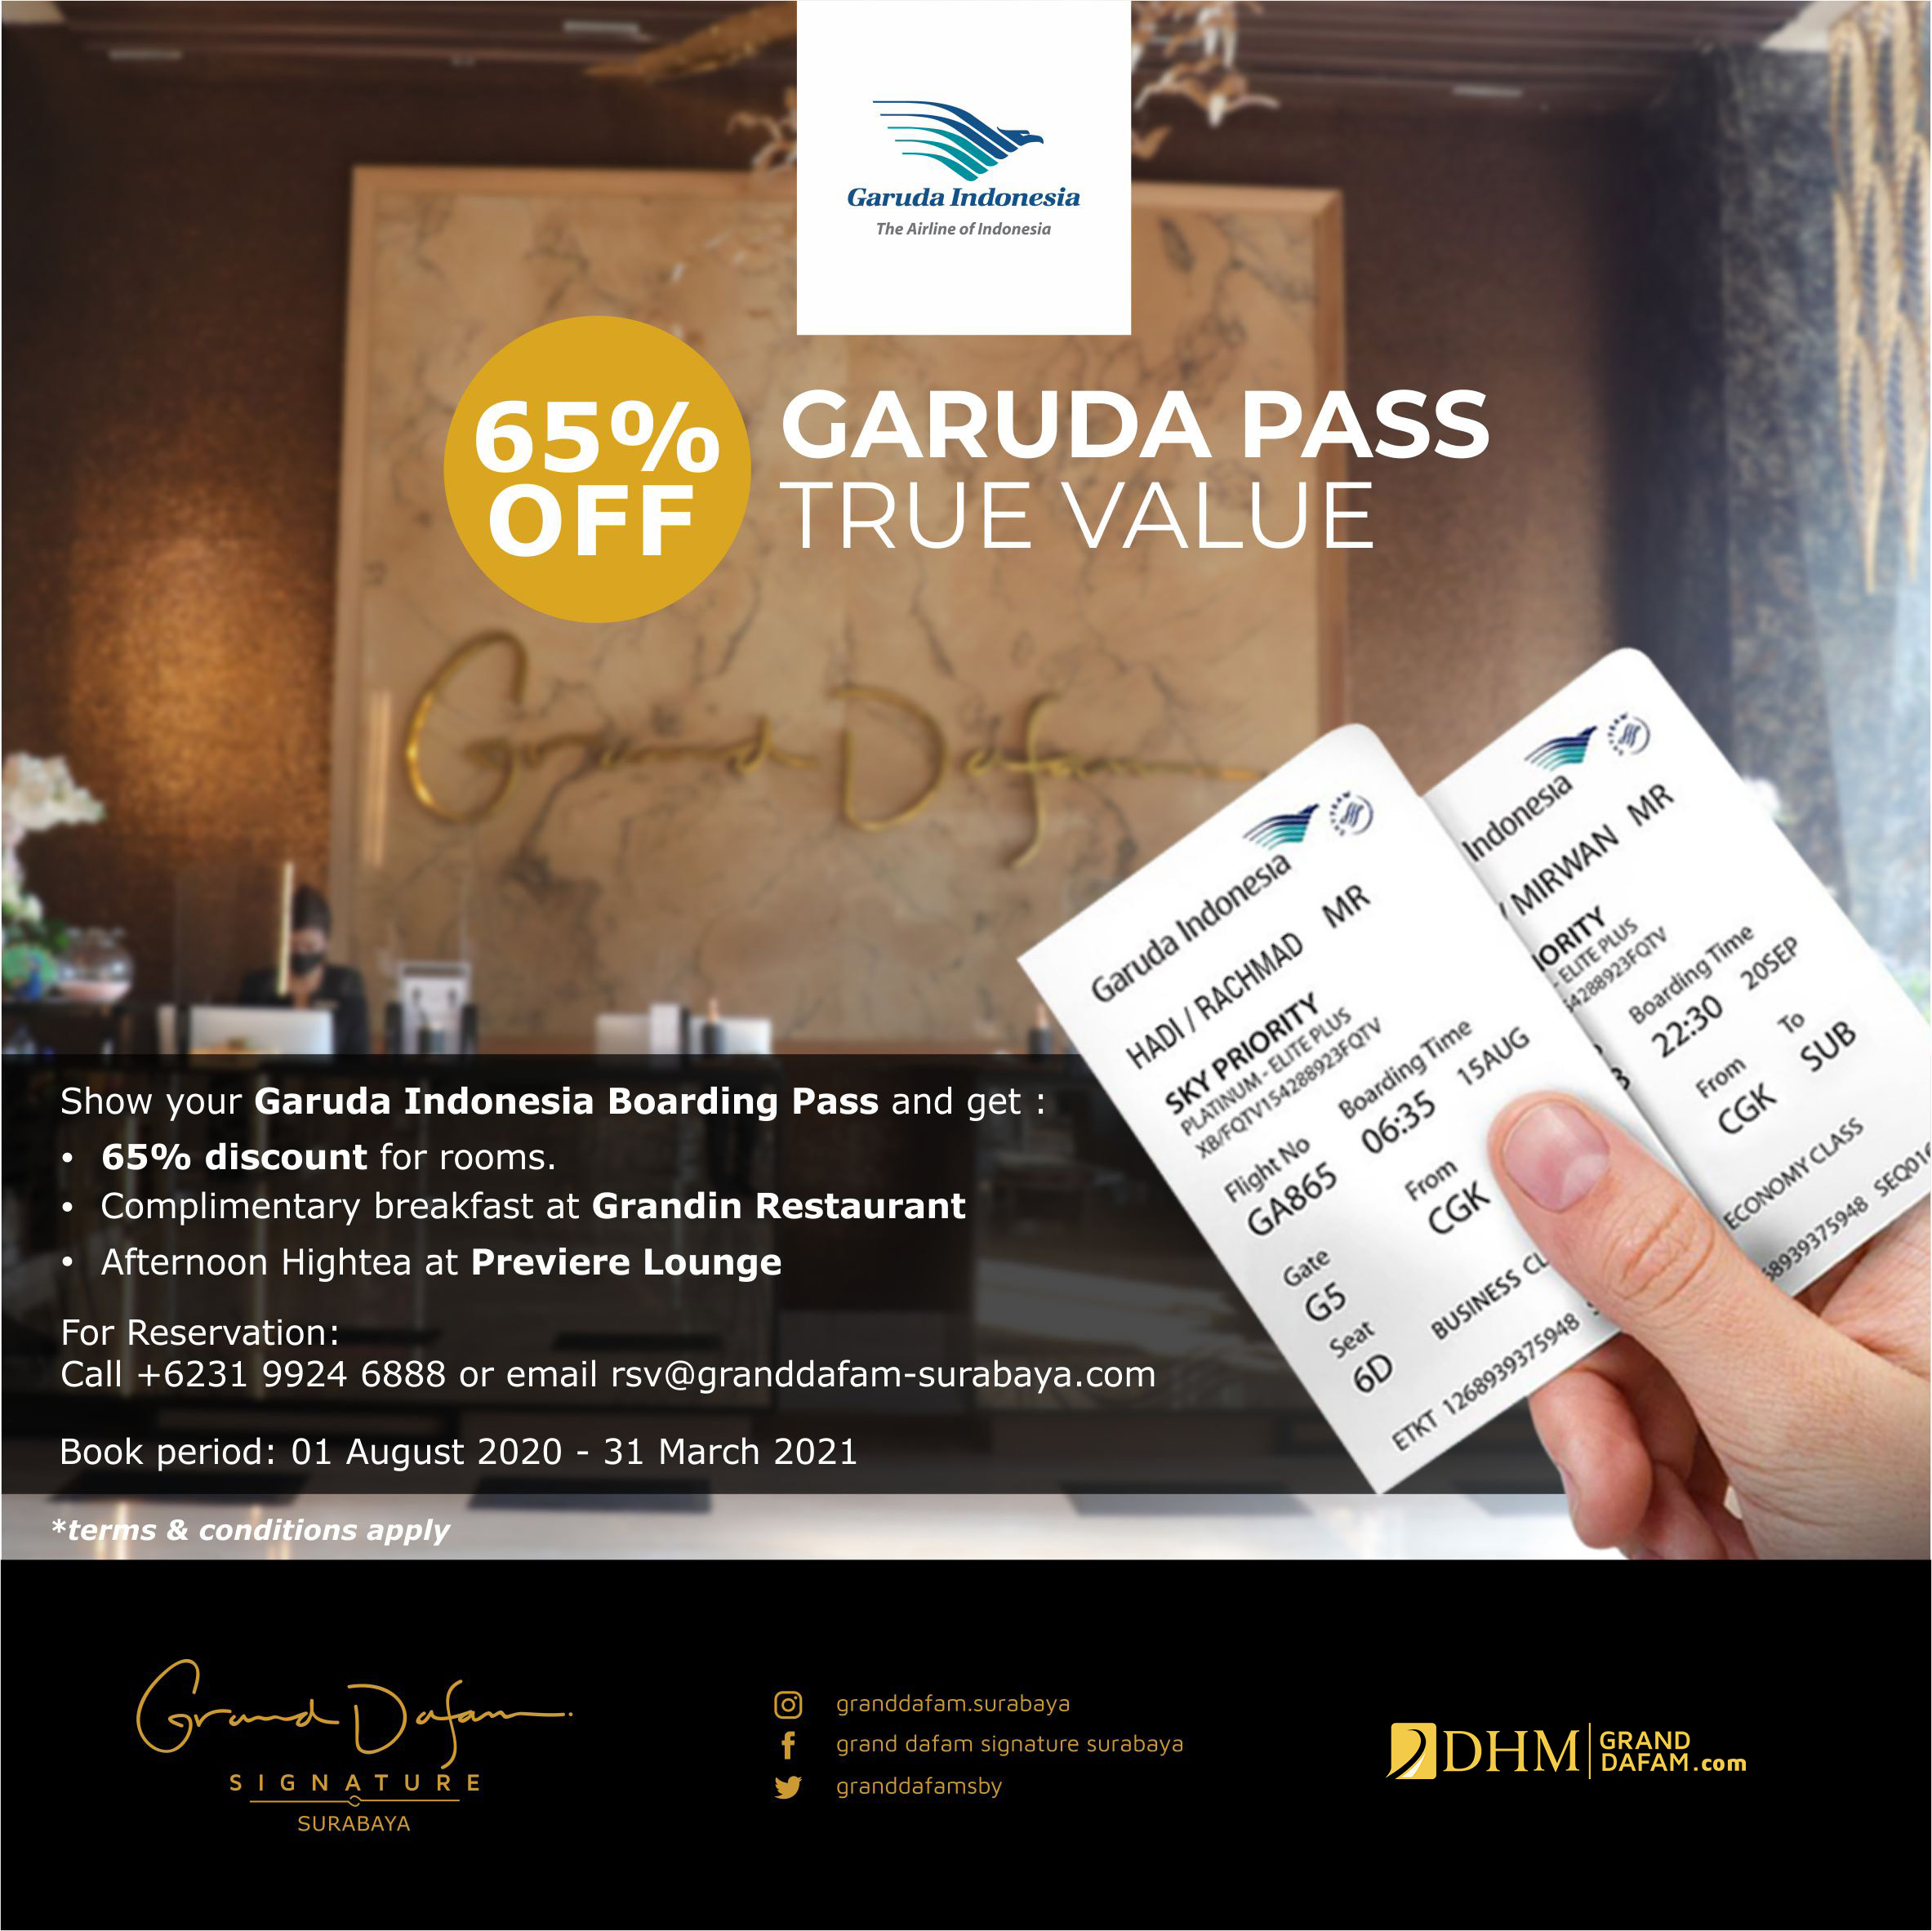 GDSS Garuda Pass Travel Value